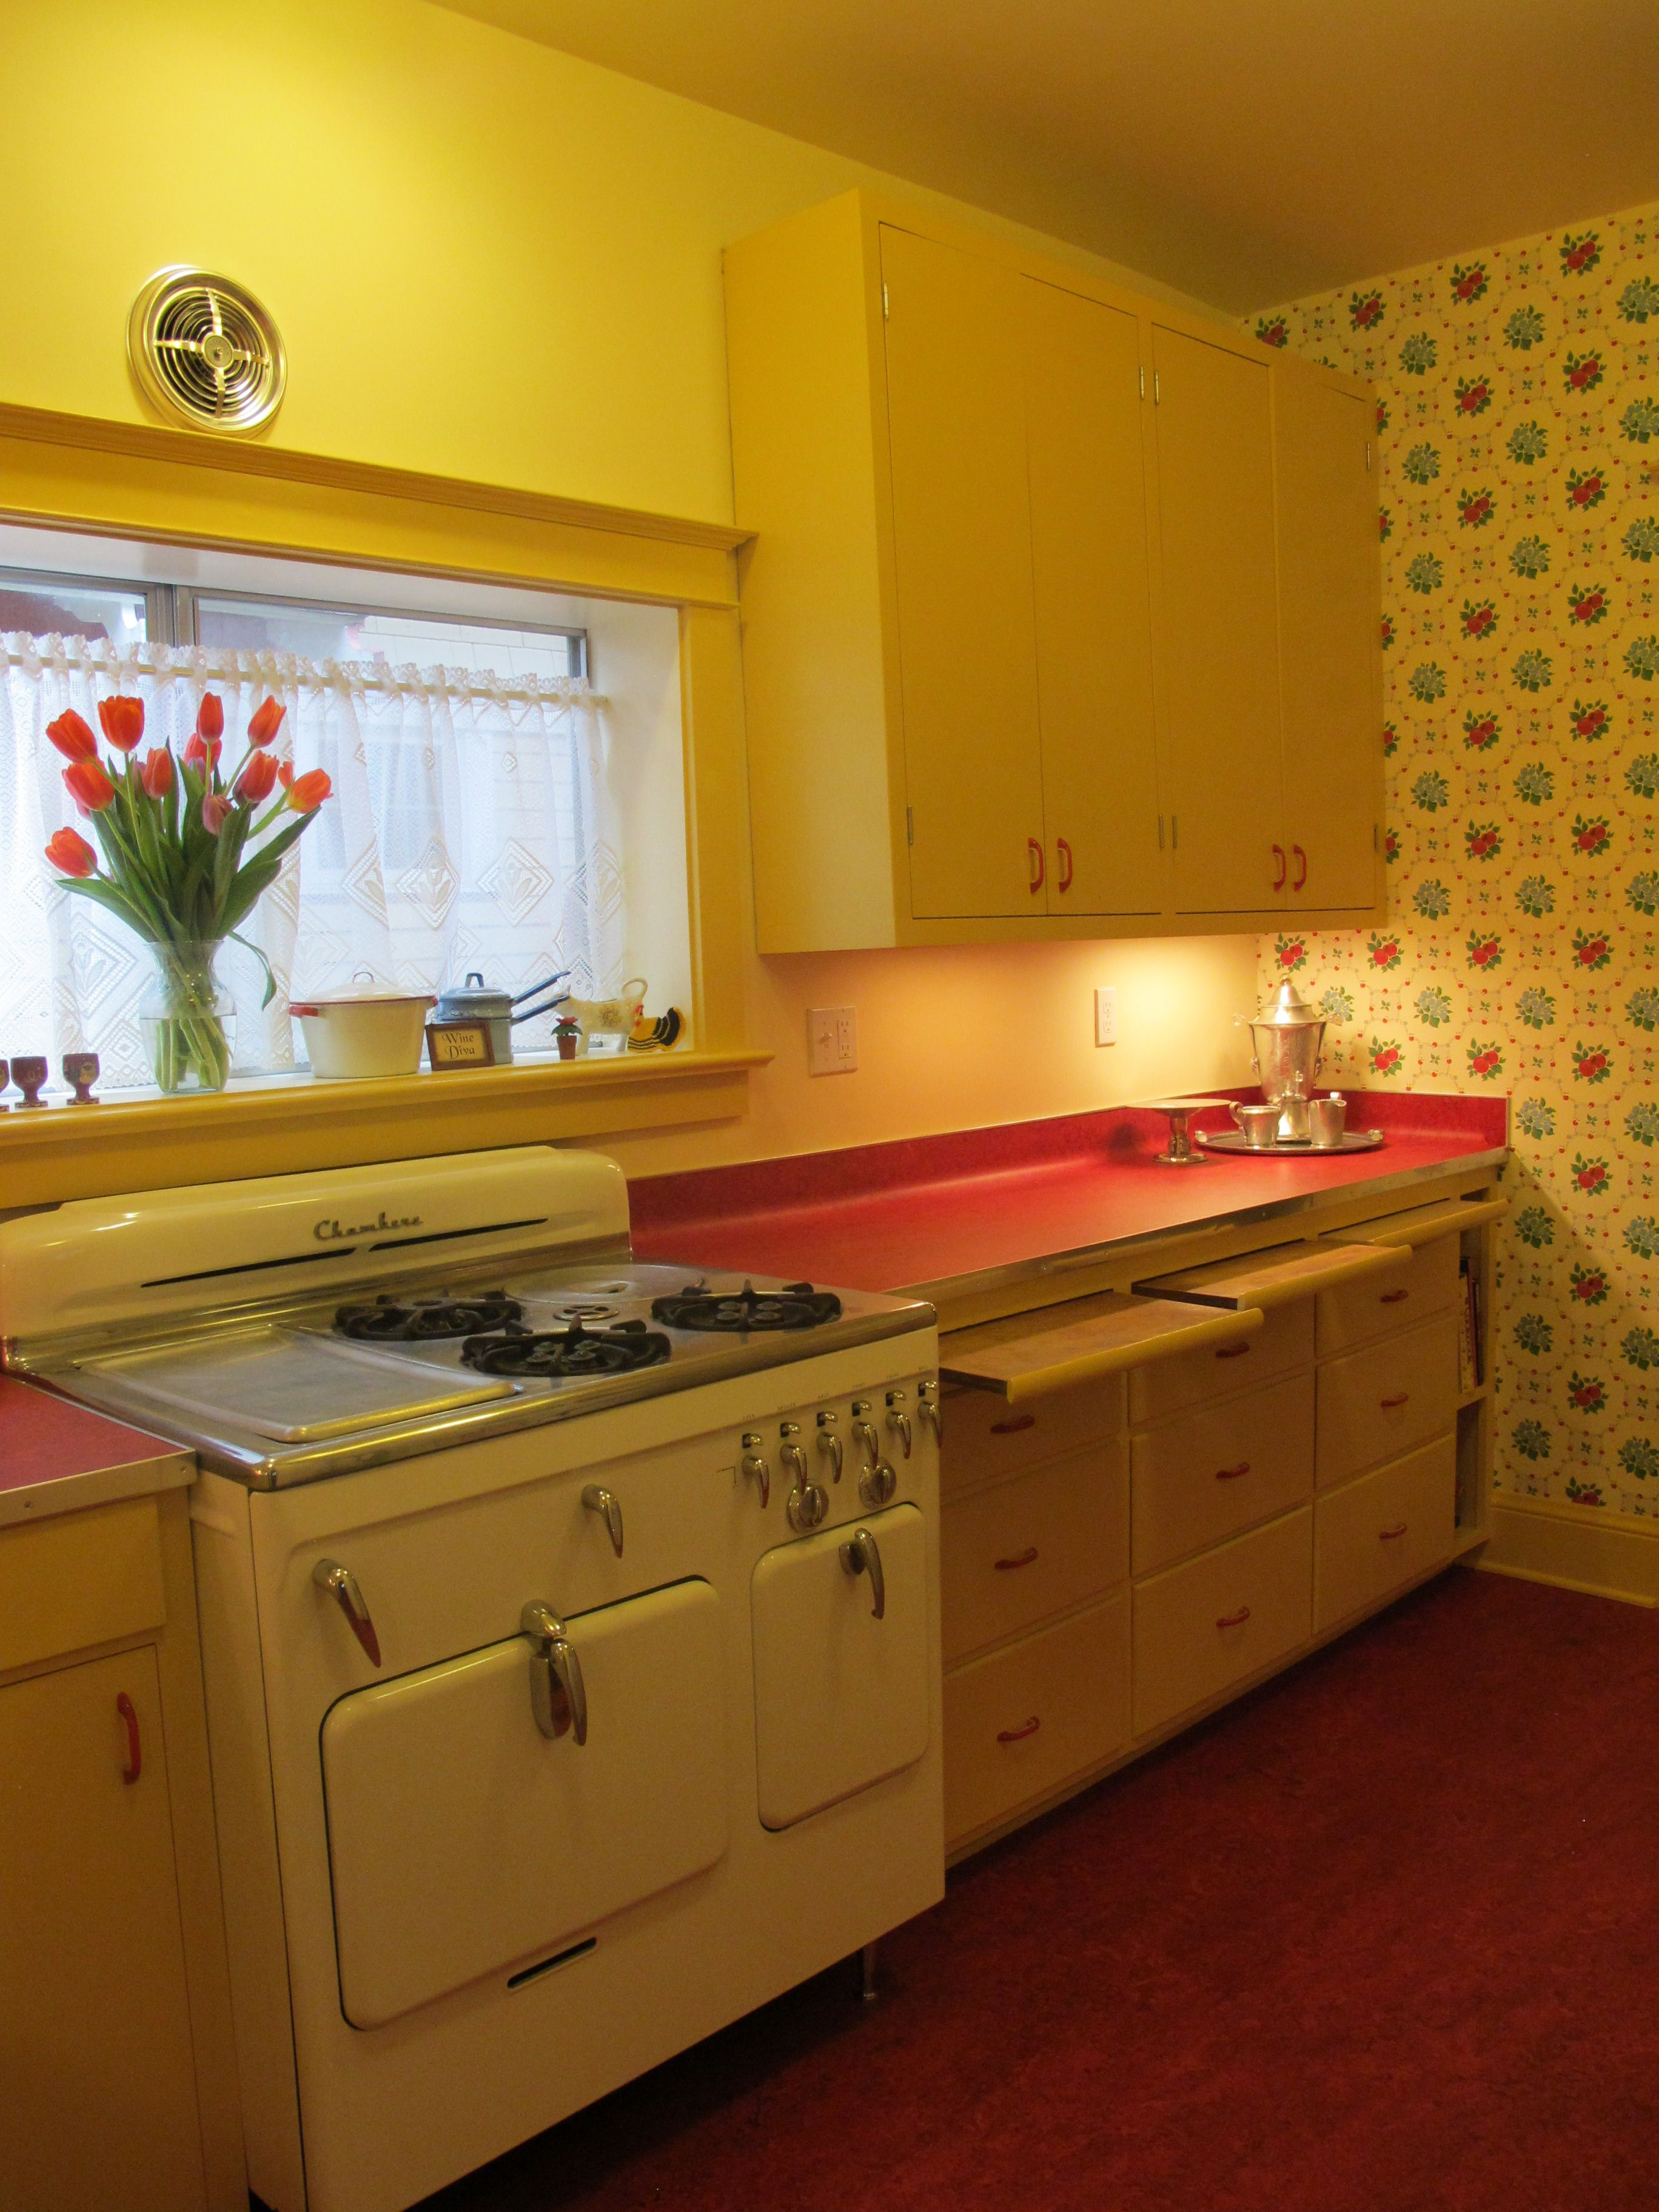 Retro Style Kitchen Retro Kitchen With Apple Betty Wallpaper From Bradbury